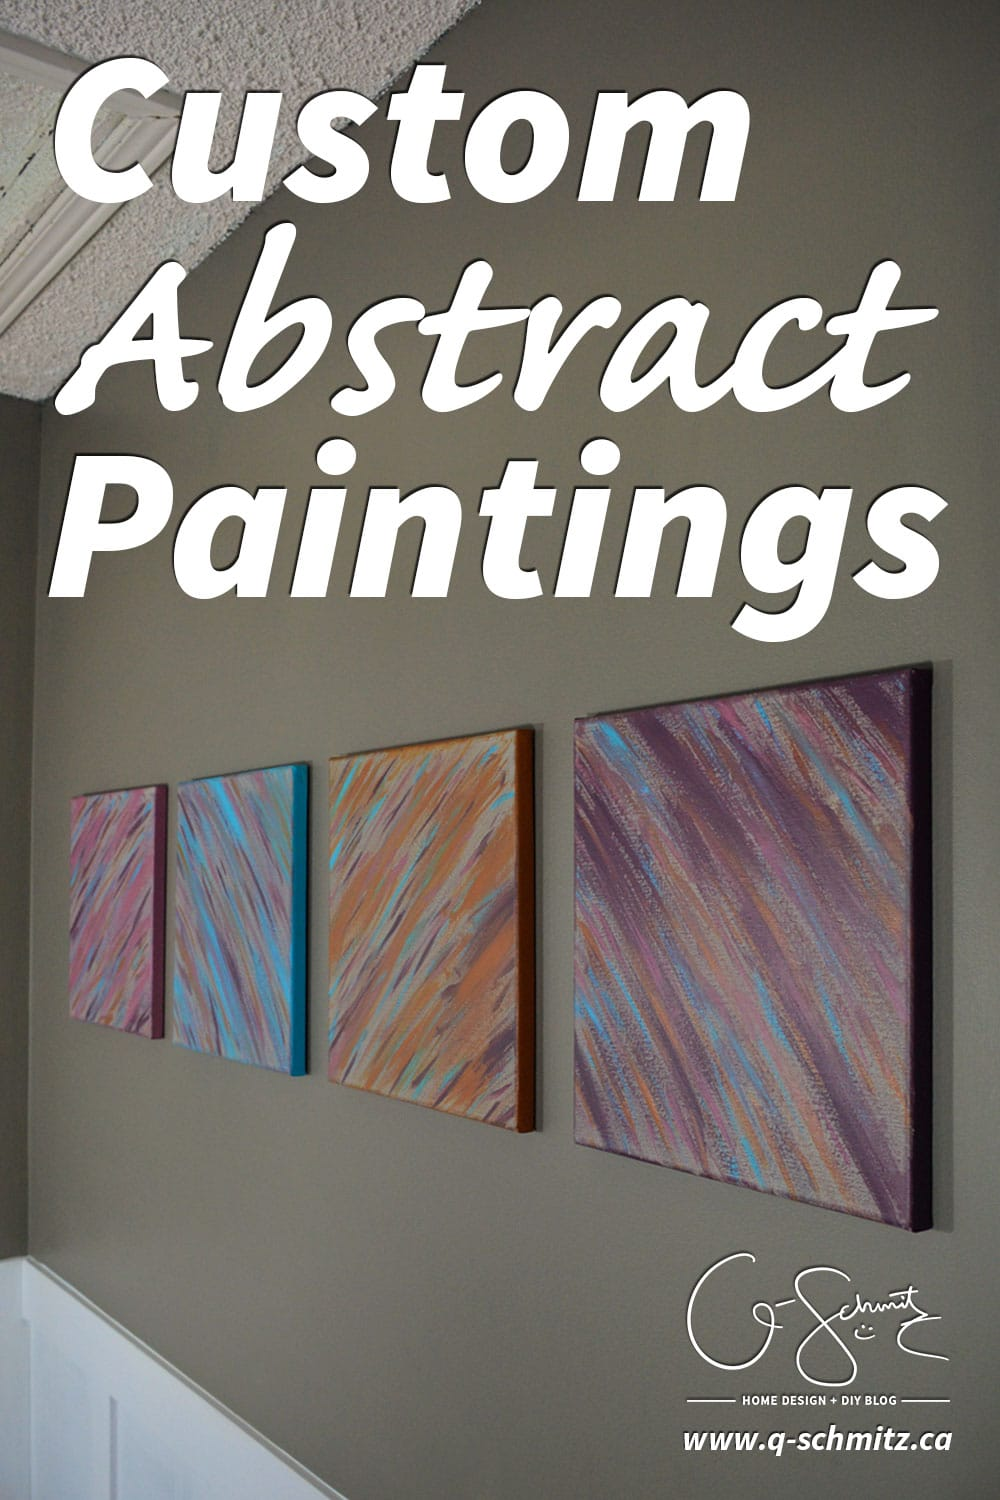 Have you ever painted your own artwork for your home? Anyone can create custom abstract paintings and you don't even have to be crafty! I'll show you how :)